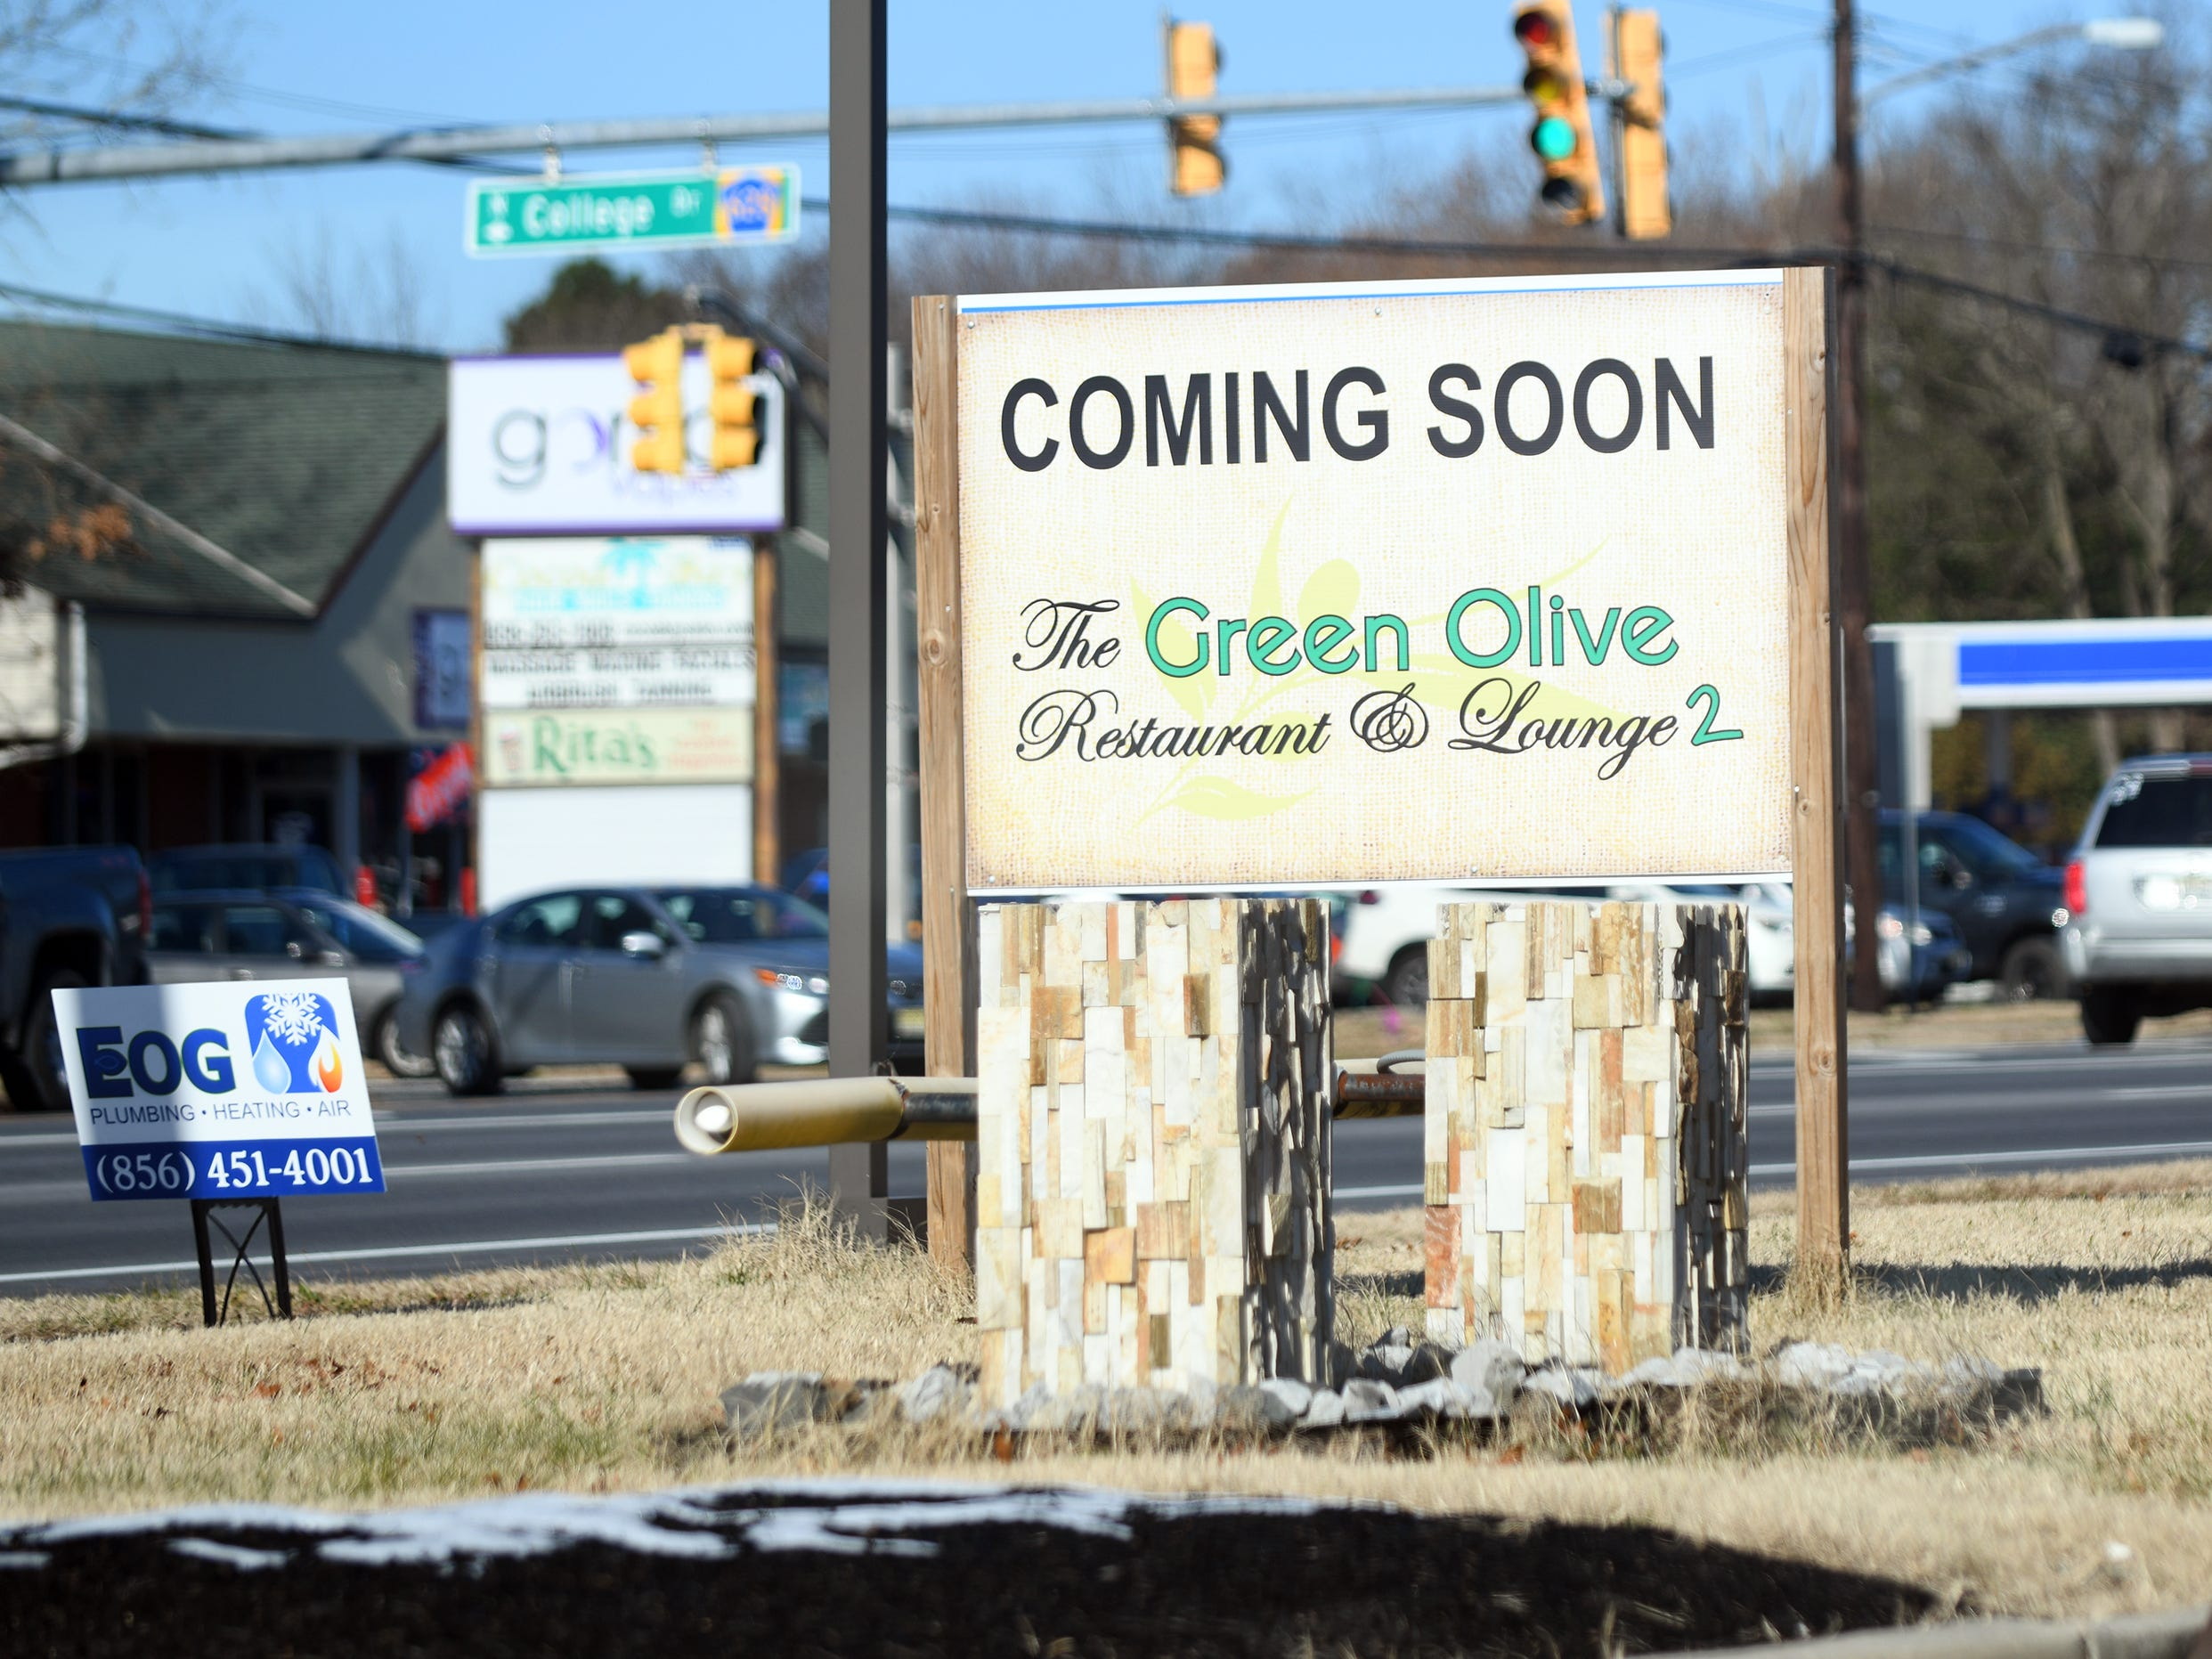 The former Cosmopolitan Restaurant, located on 3513 S. Delsea Drive in Vineland, will become The Green Olive Restaurant and Lounge 2. Construction at the site continues on Friday, December 7, 2018.